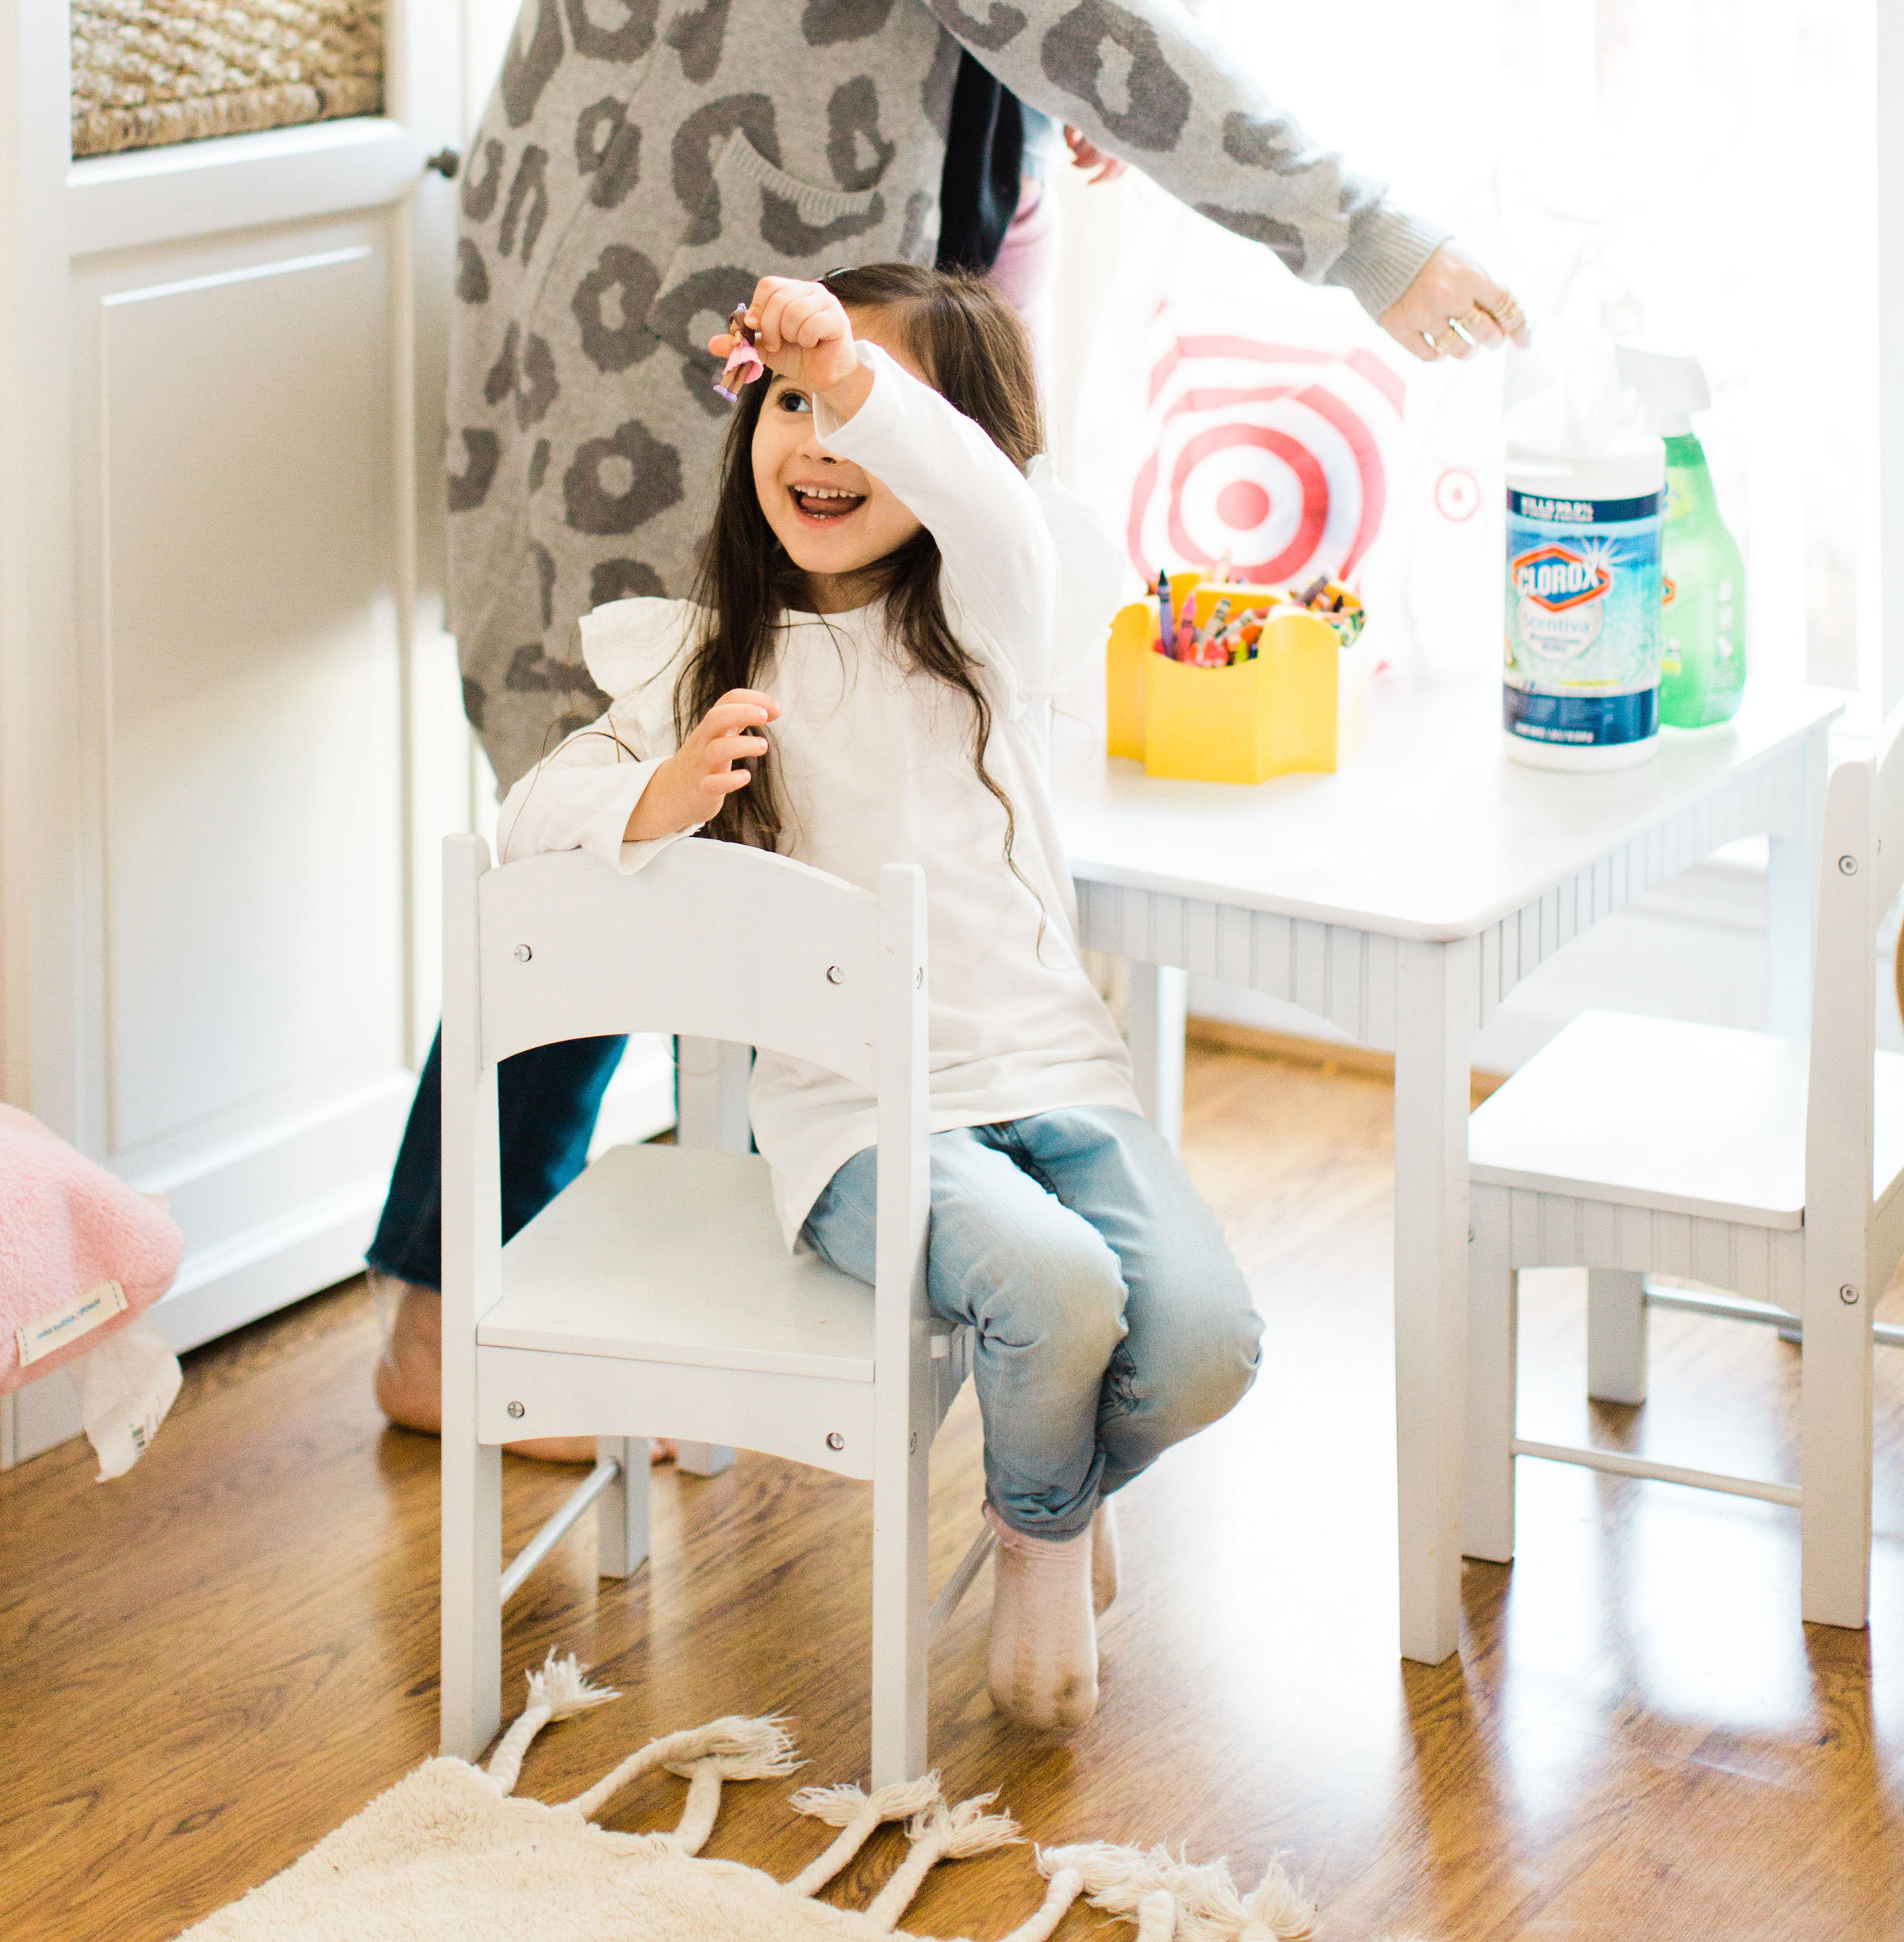 5 Cleaning Hacks (for Busy Parents Who Don't Like to Clean) - 35 Brilliant Life Hacks for Moms